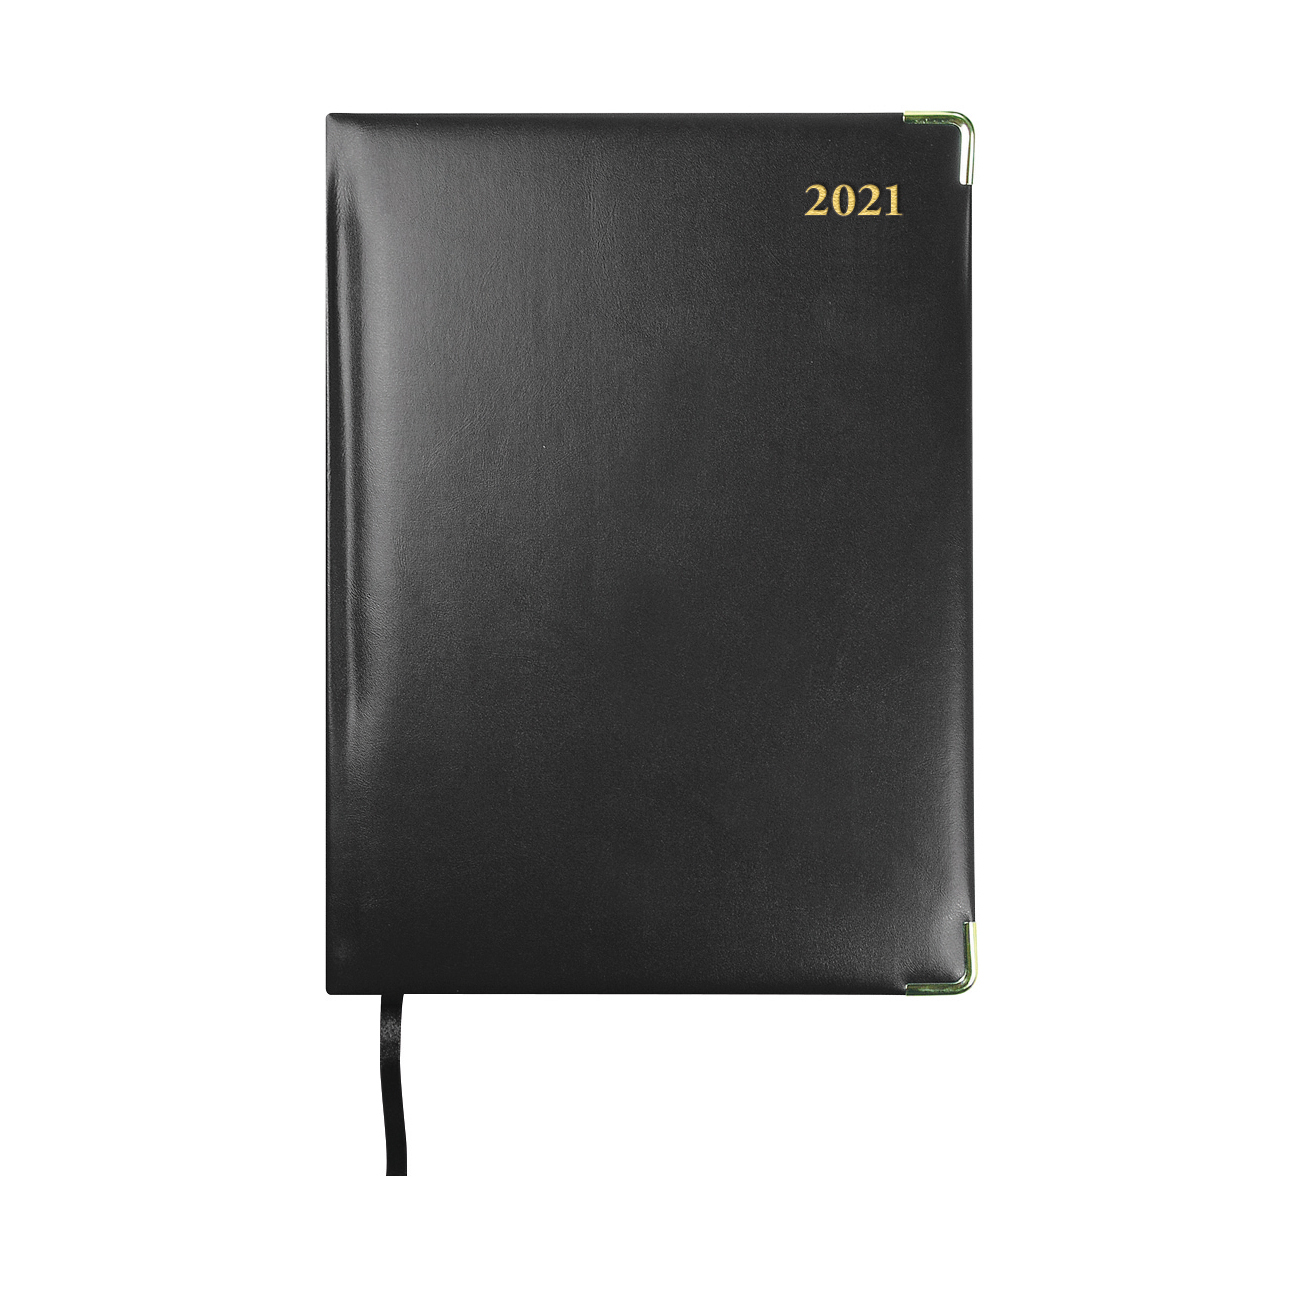 Collins 2021 Classic Compact Desk Diary Day to Page Sewn Binding 210x148mm Black Ref 1250V 2021